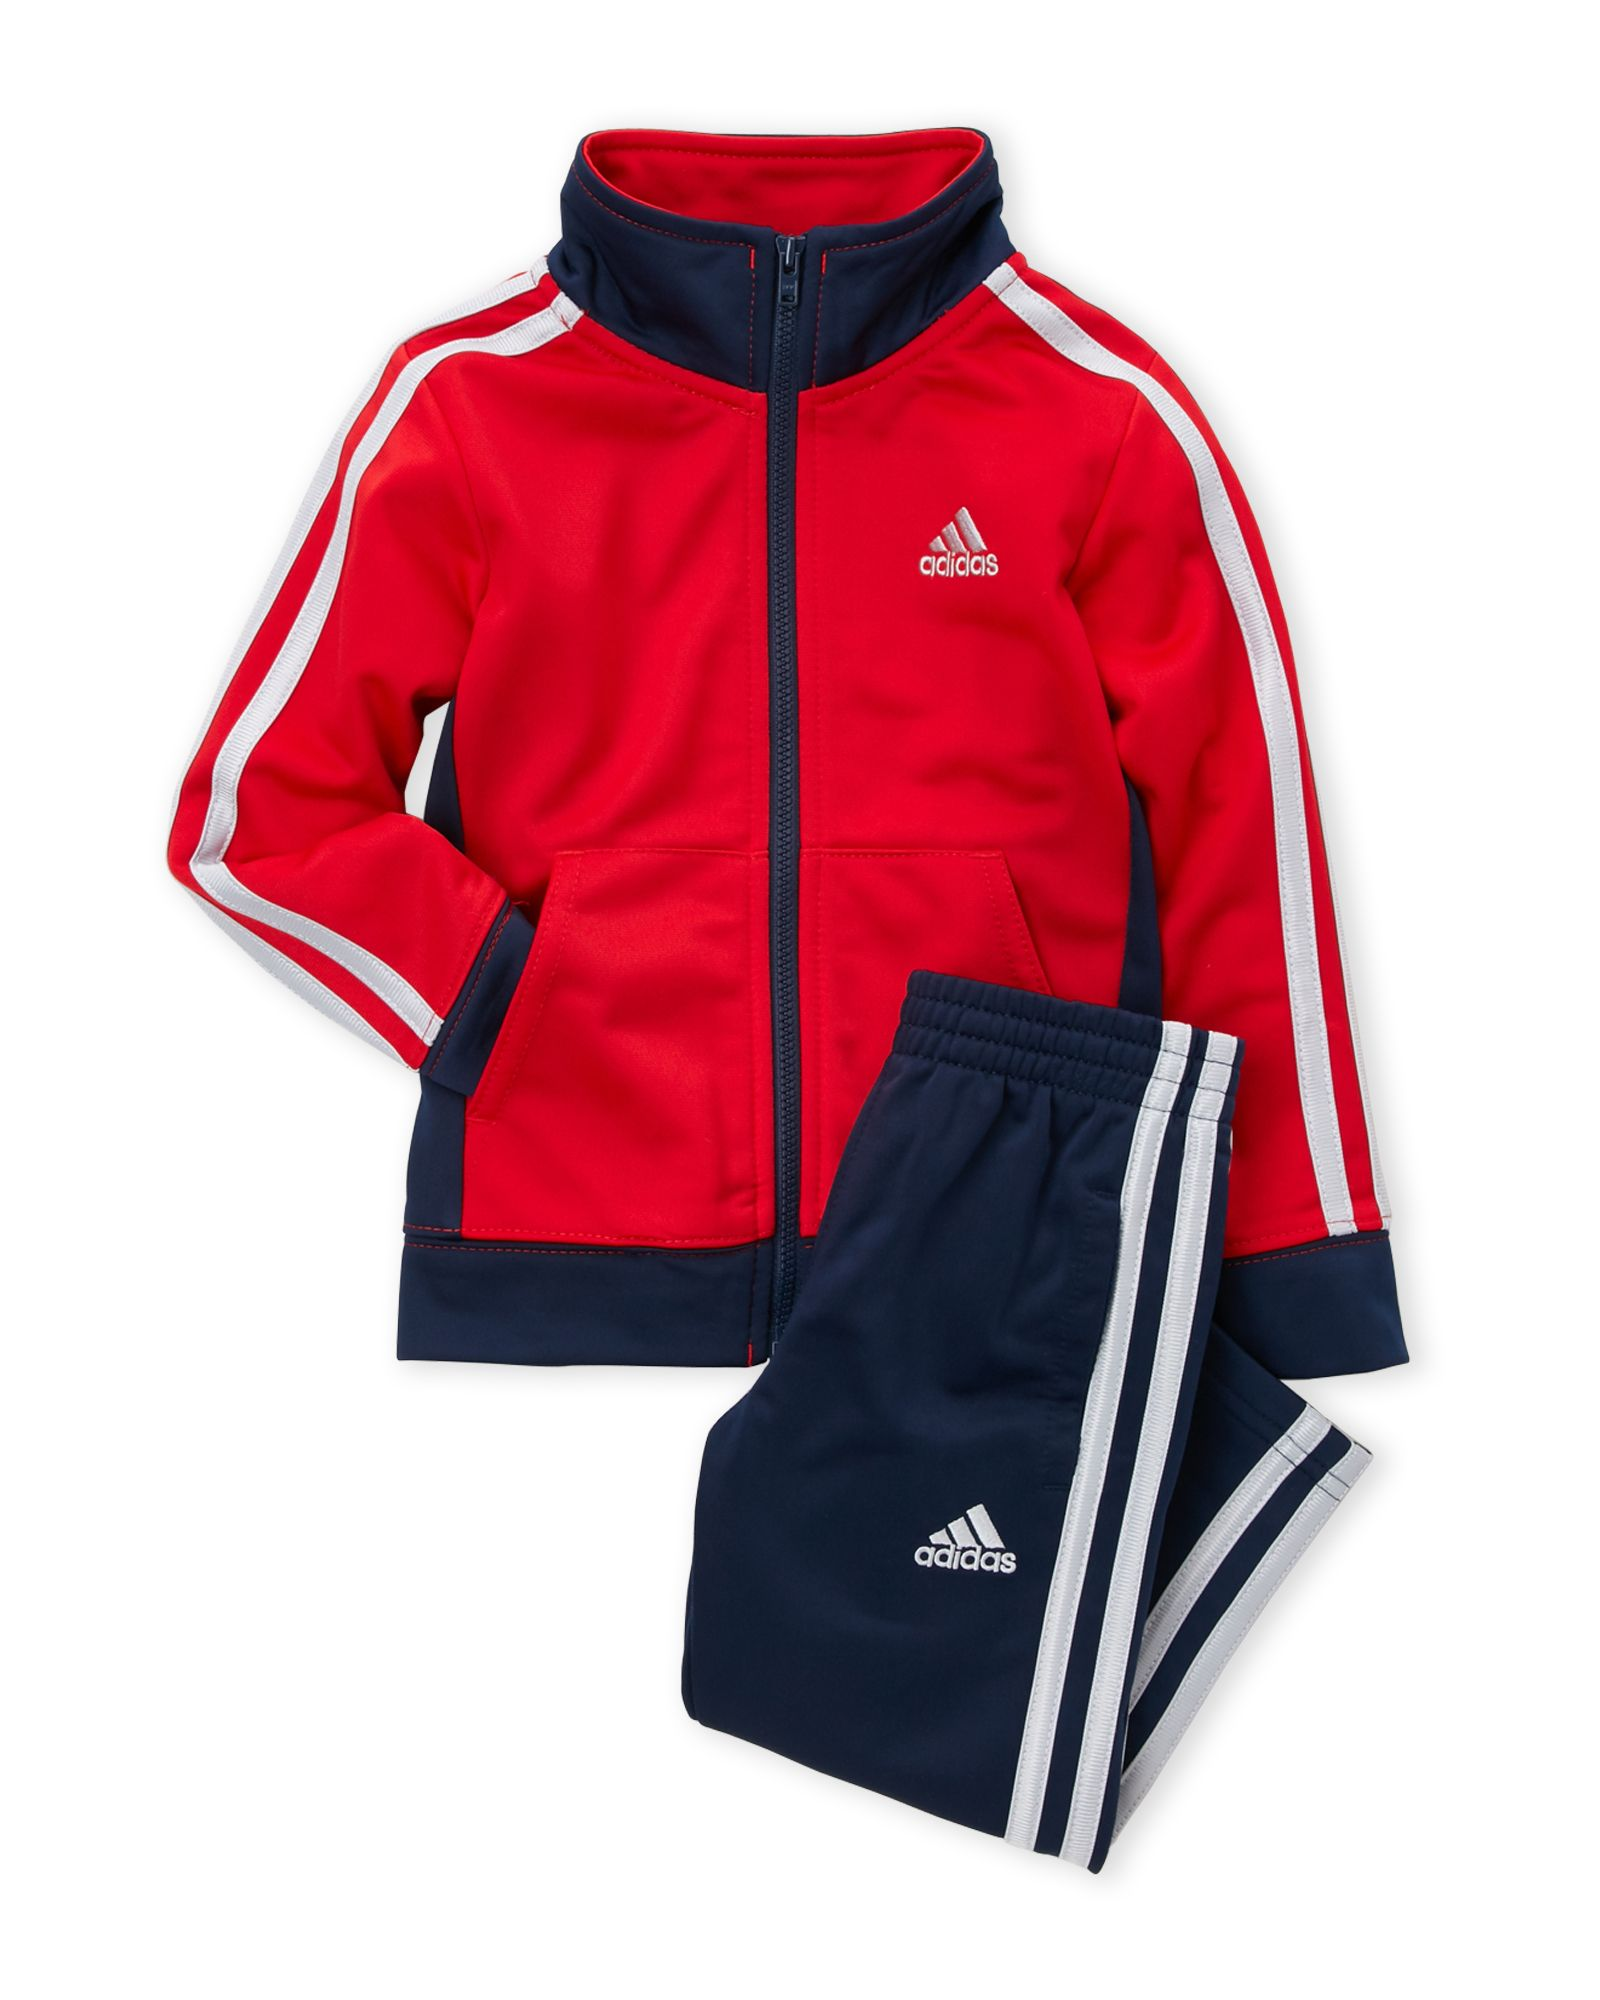 Boys 4 7) Two Piece Color Block Jacket & Track Pants Set